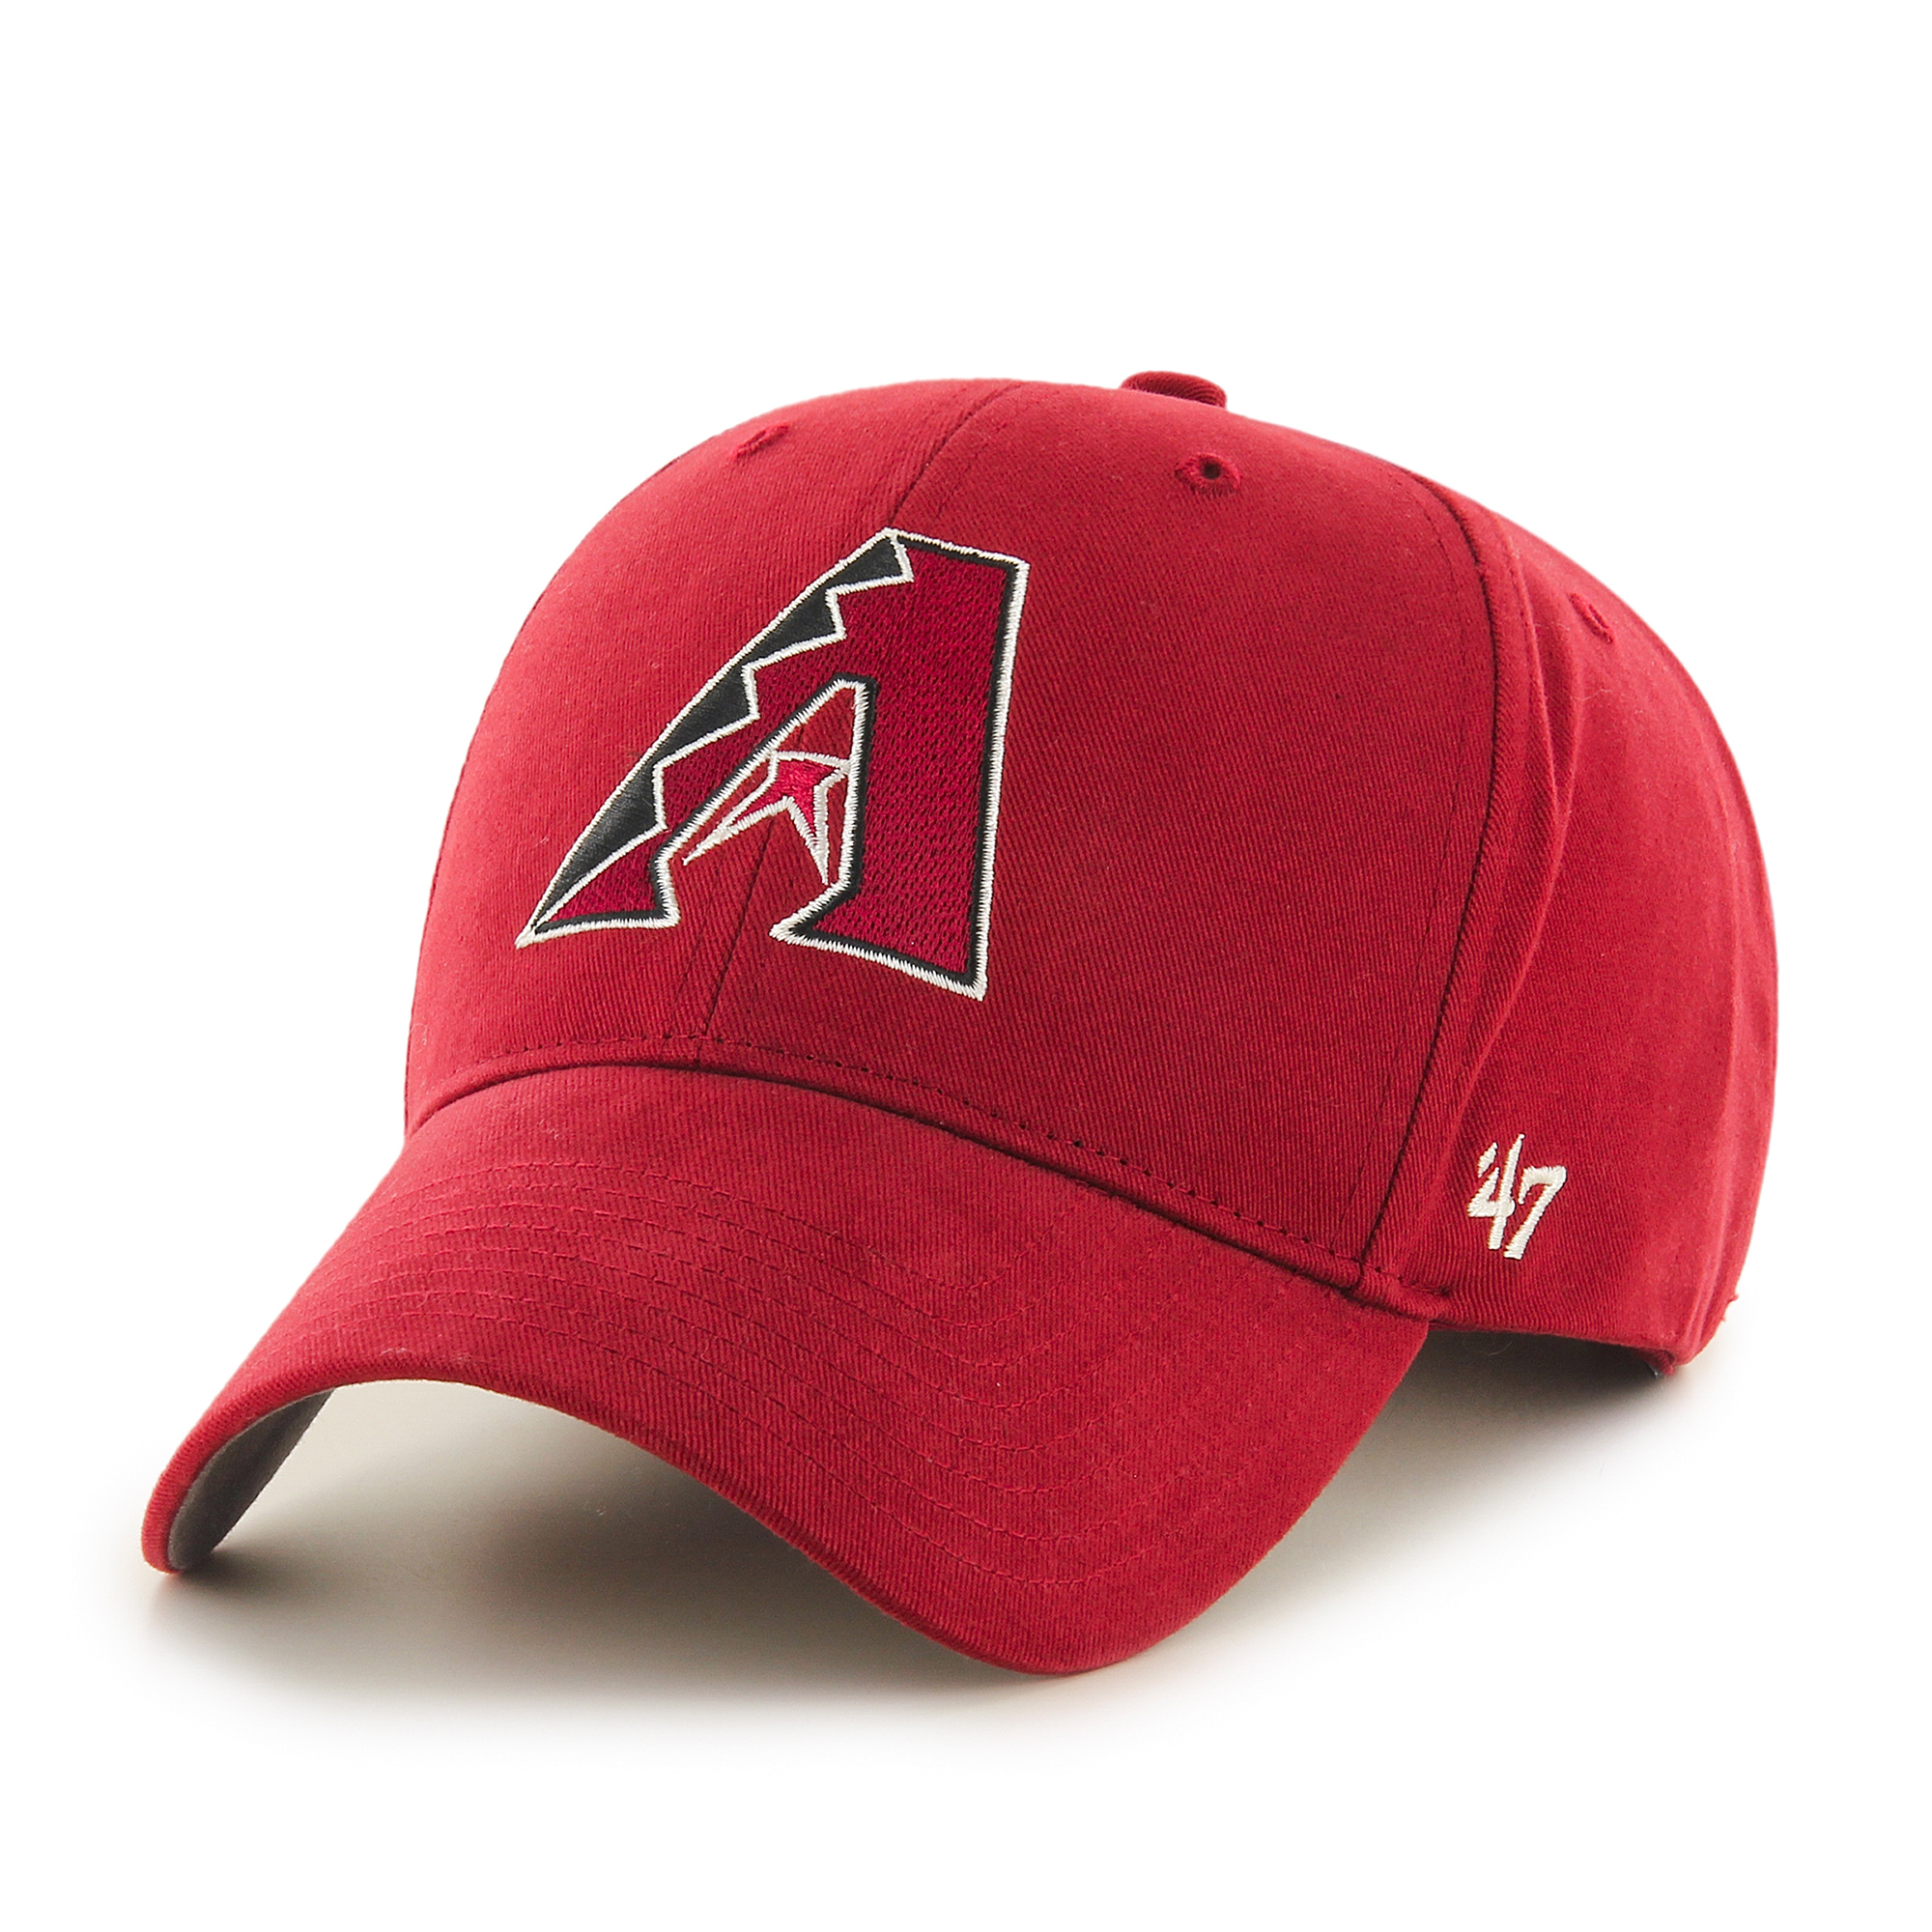 Arizona Diamondbacks '47 Infant Basic Logo Adjustable Hat - Red - OSFA